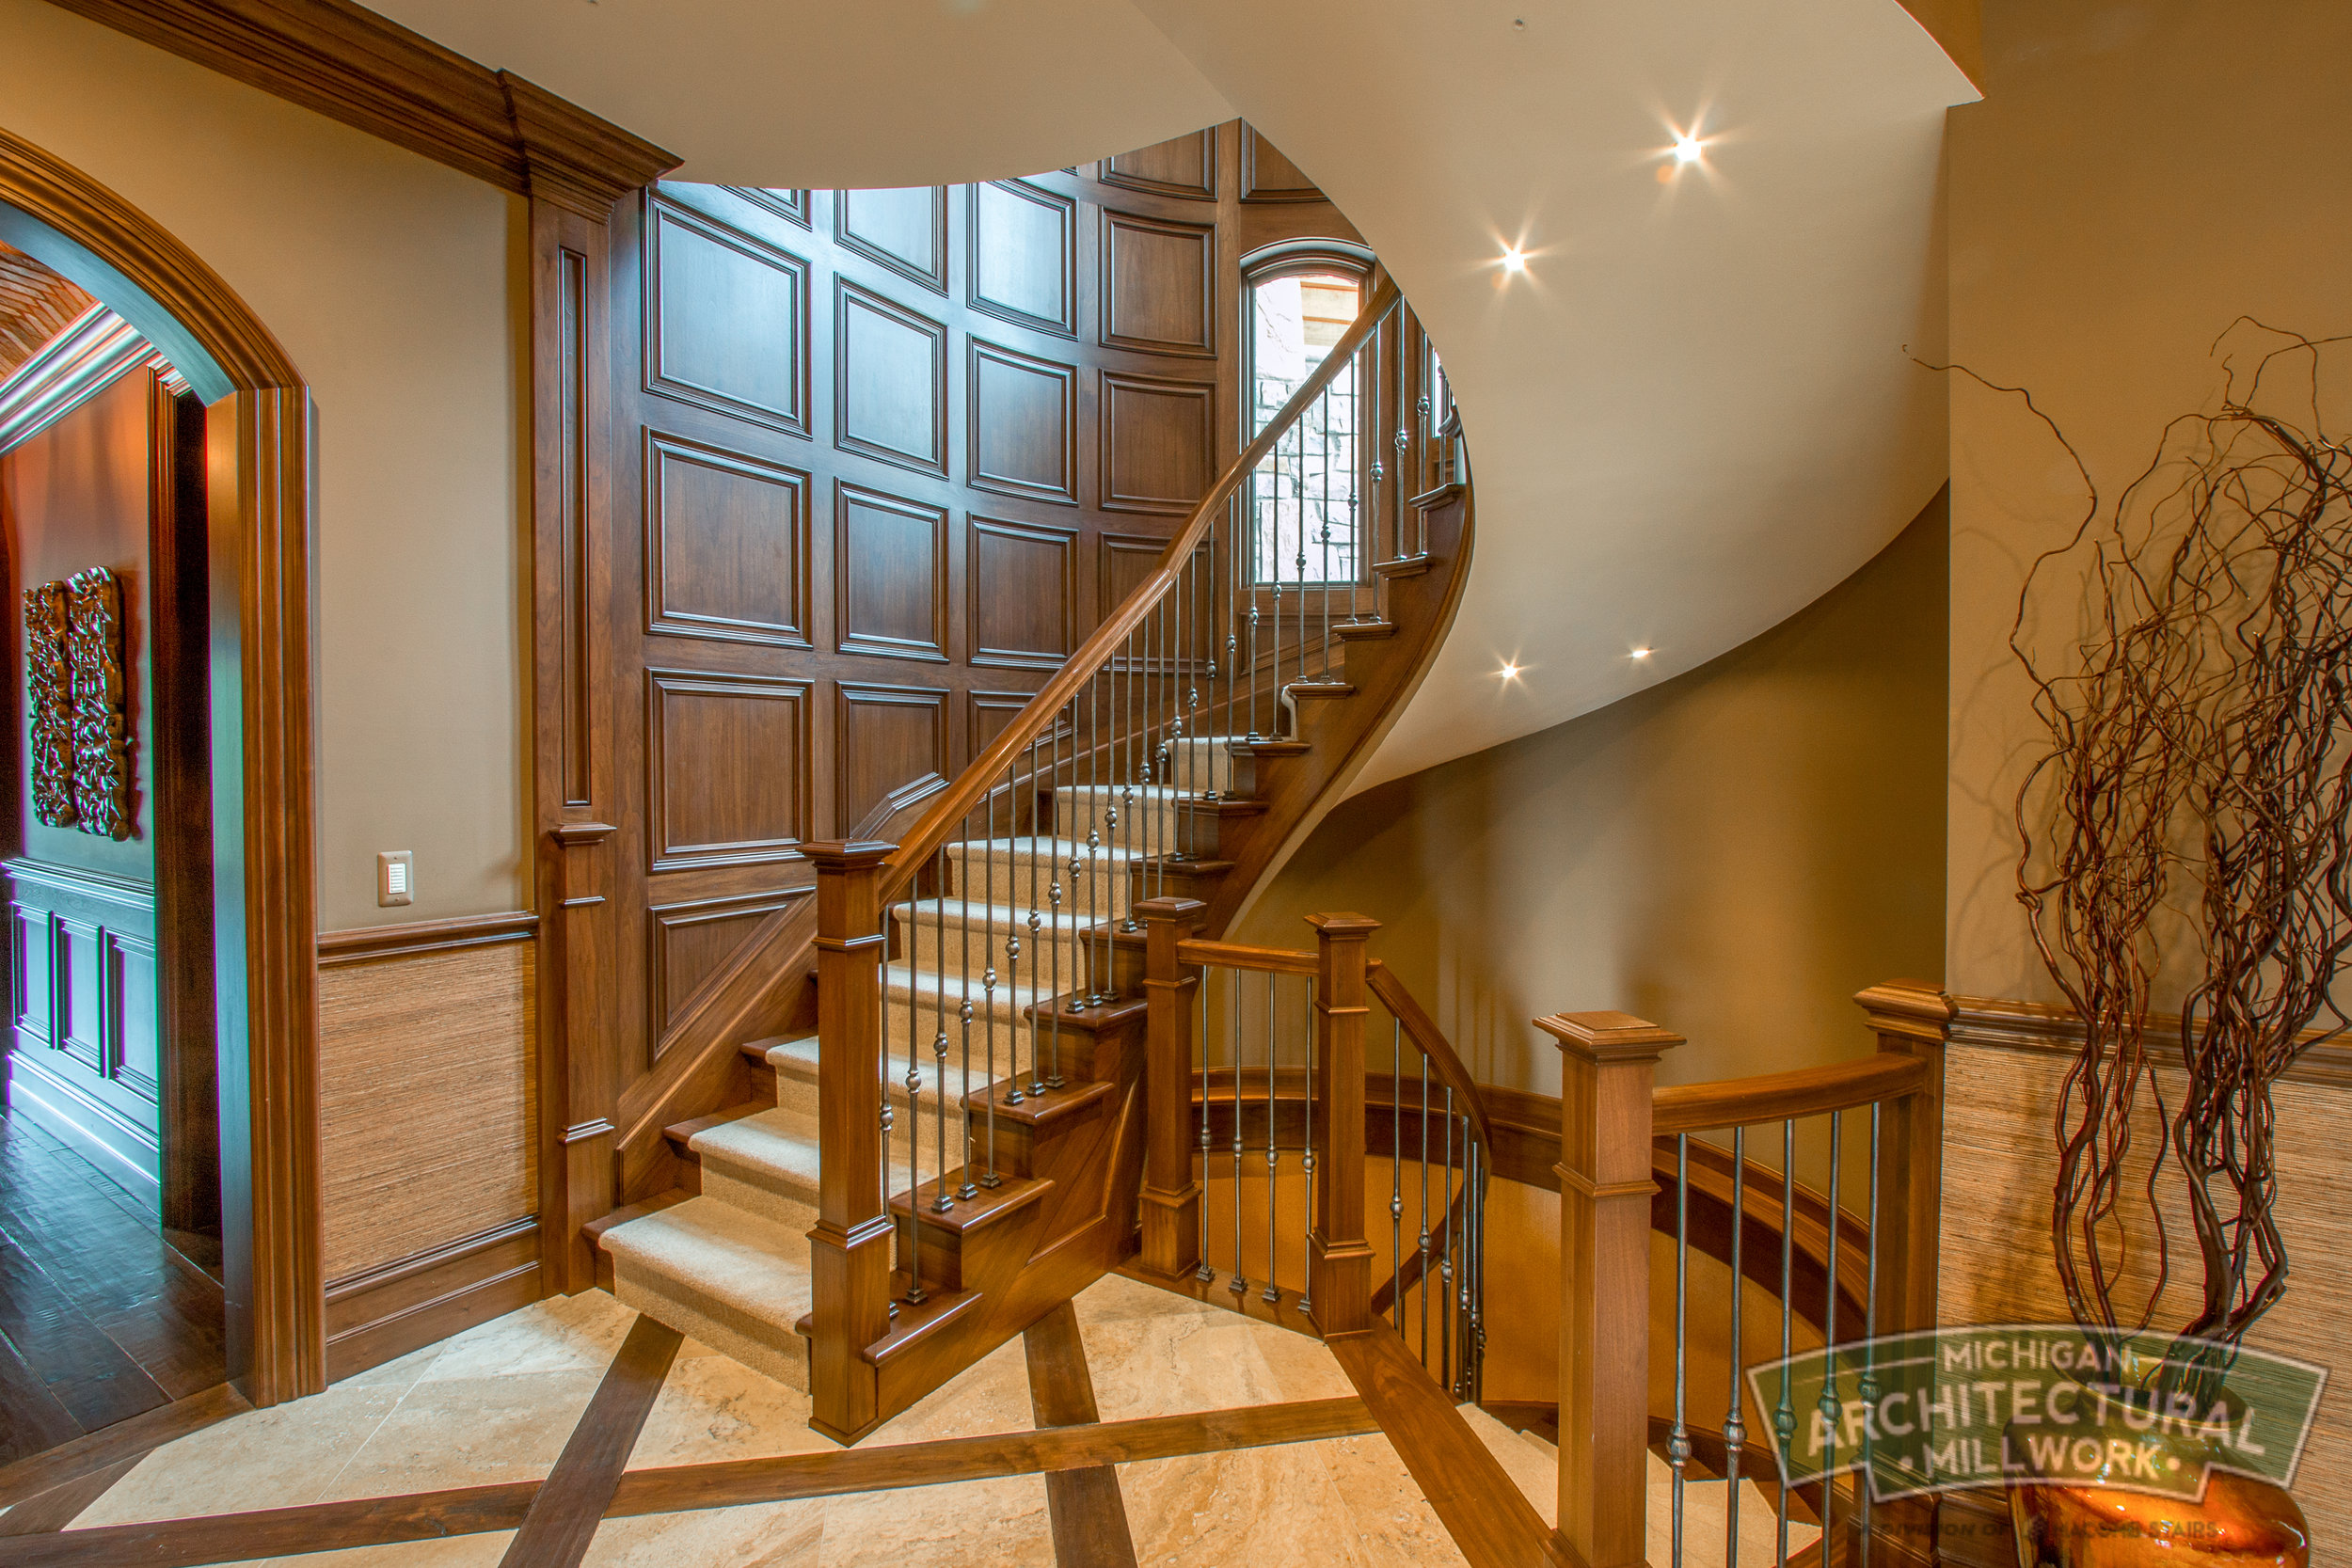 Michigan Architectural Millwork- Moulding and Millwork Photo-63.jpg